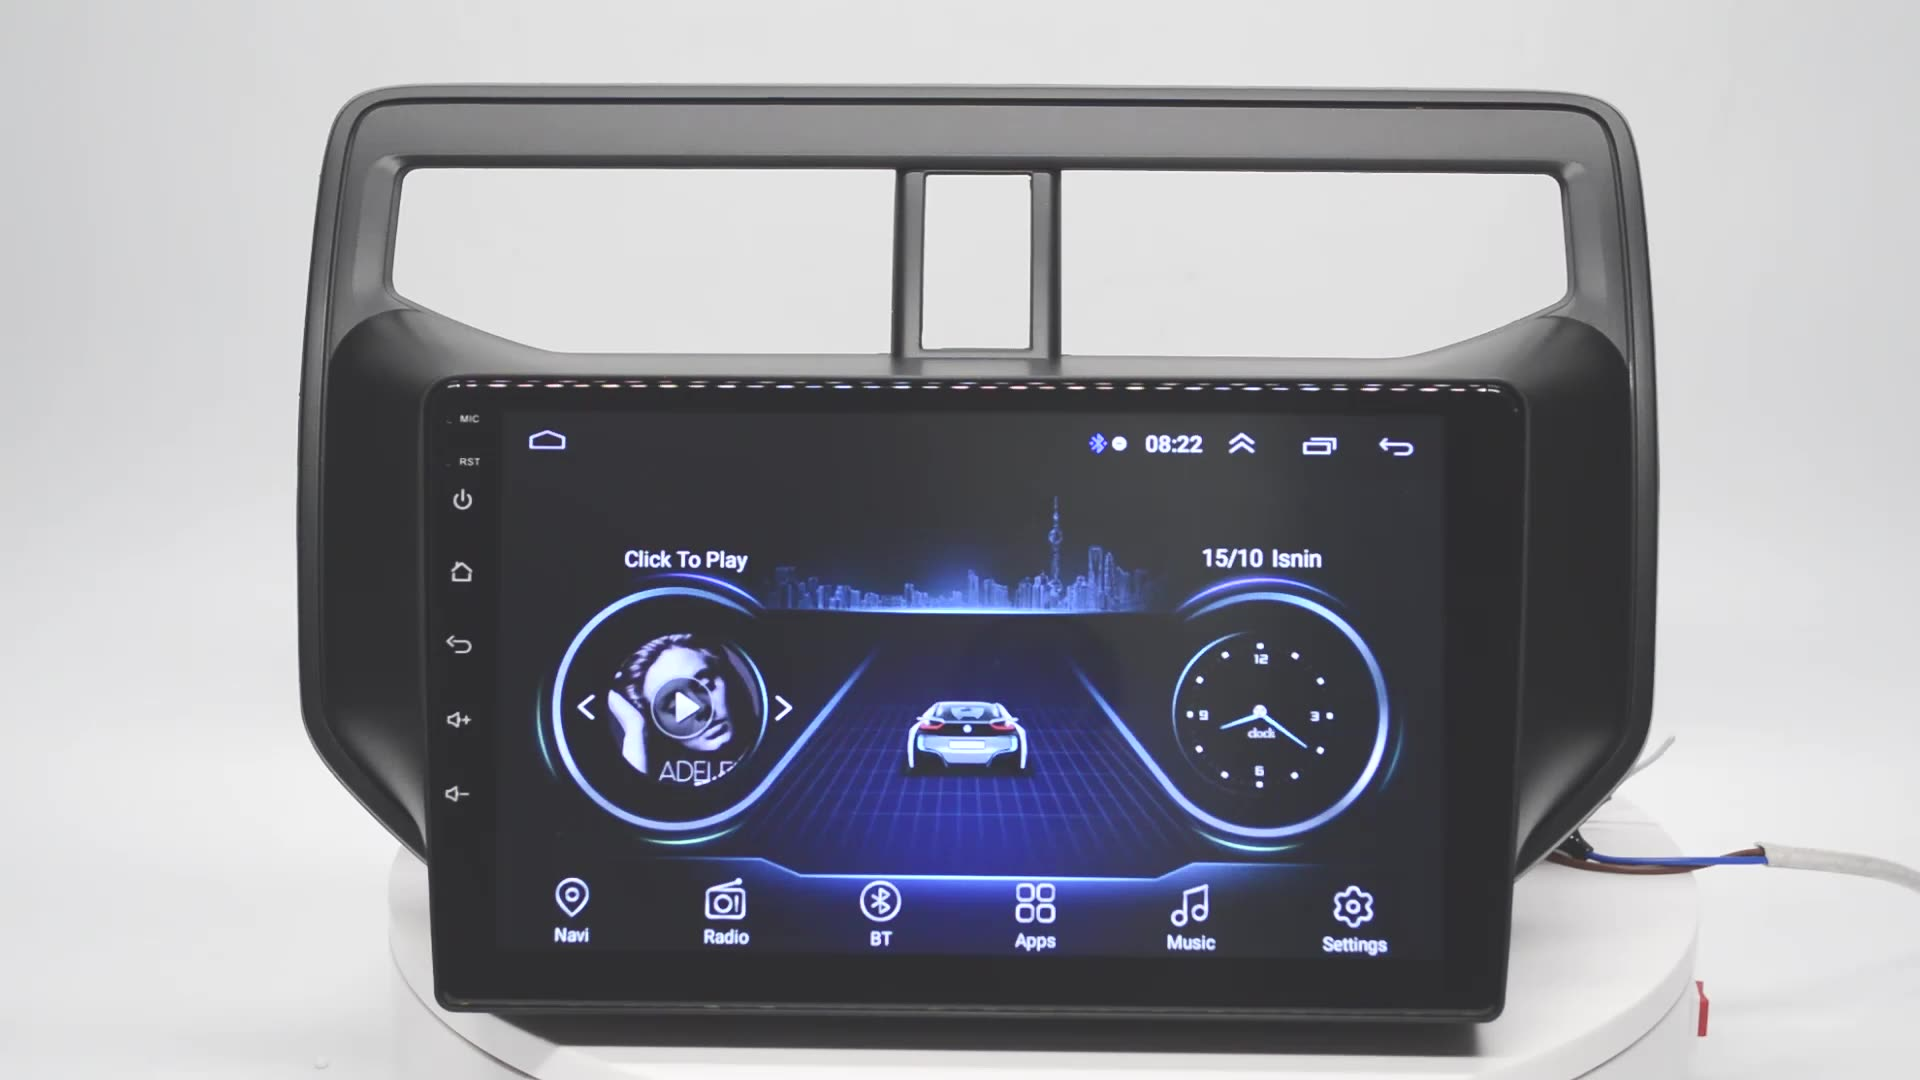 Suoer Para TOYOTA DO RUSH 9 polegadas best selling mp5 vedio cd player android media player do carro